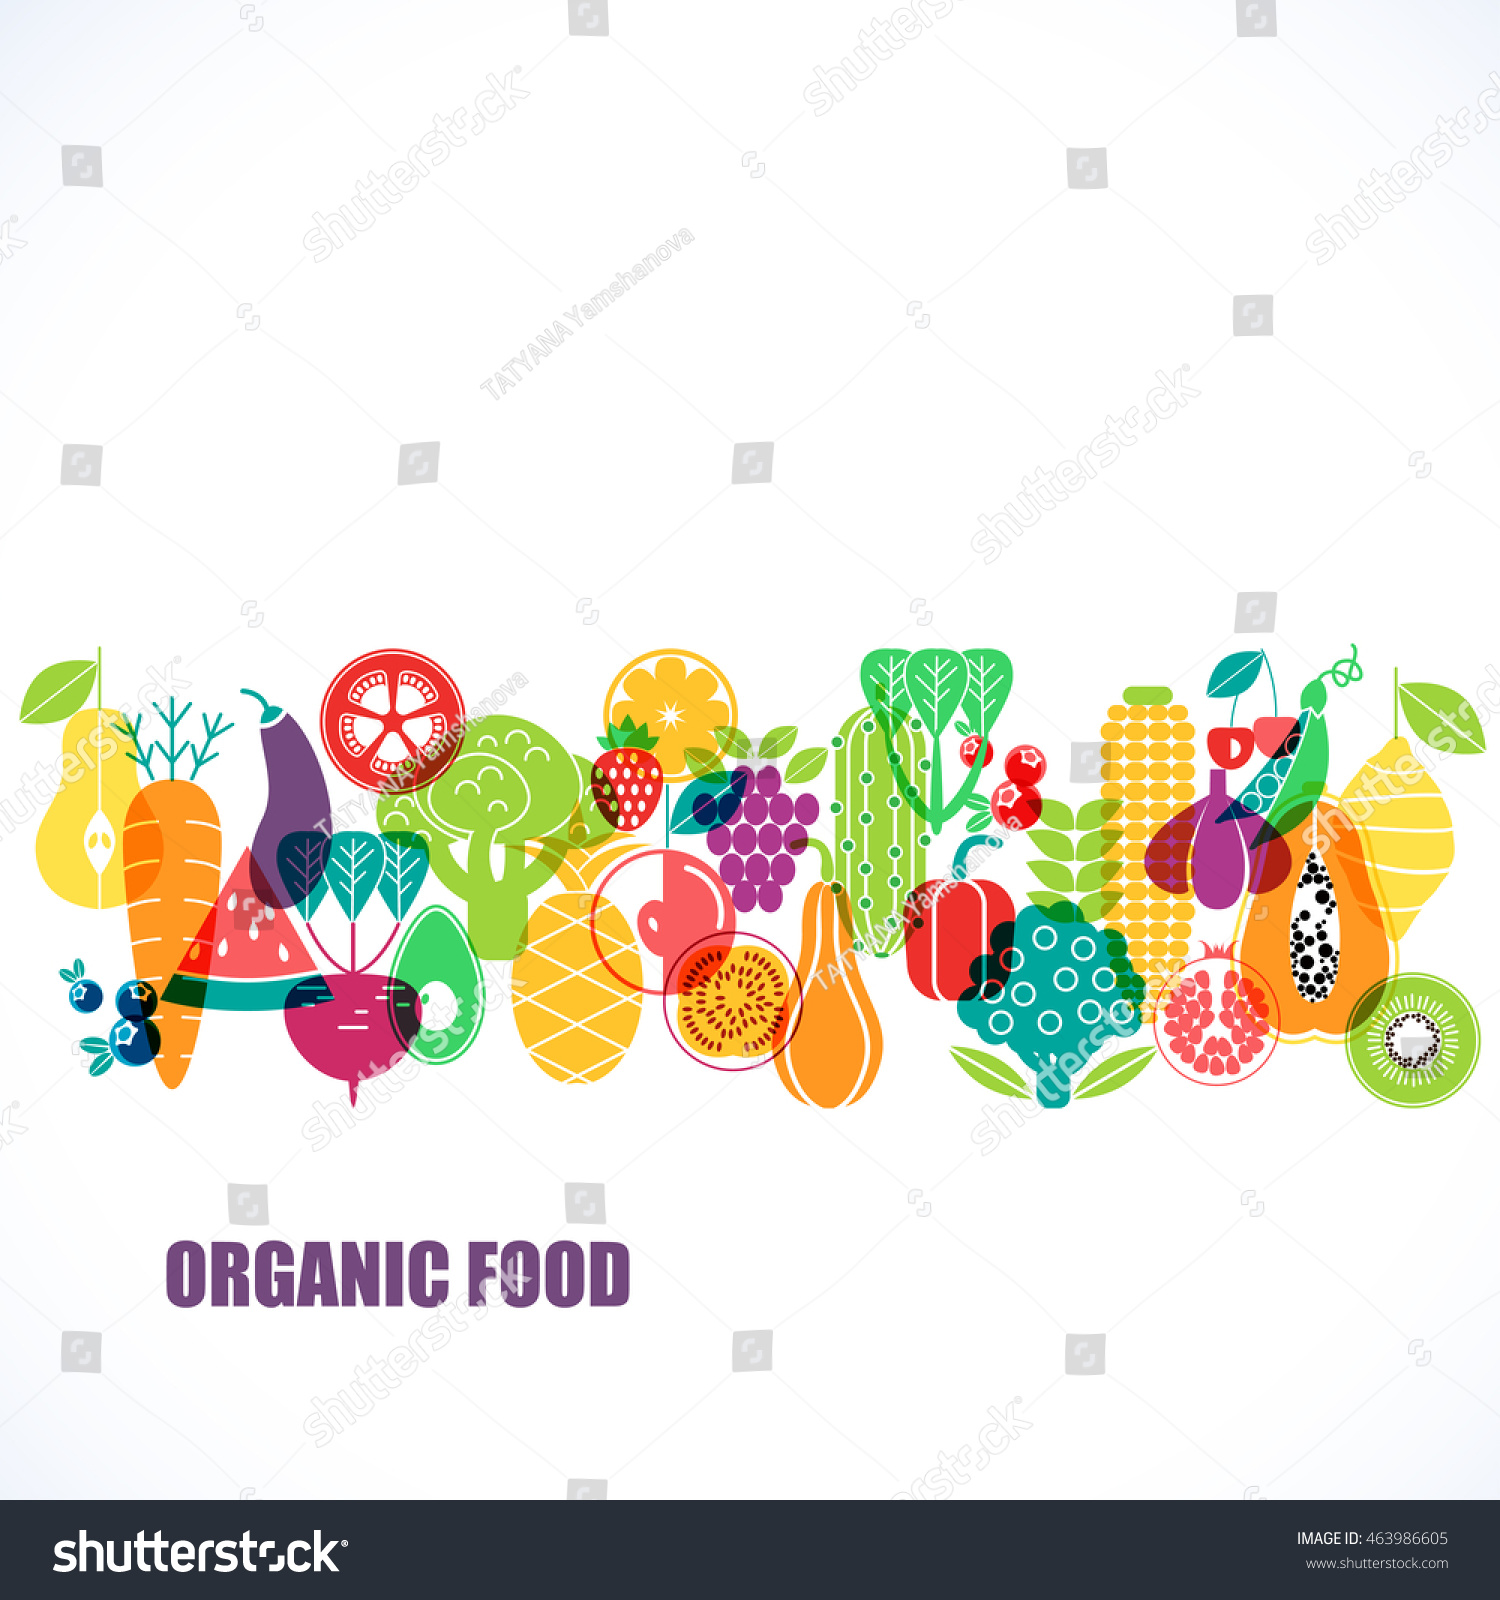 Vector pattern of vegetables. Organic fruits and vegetables template.  #463986605